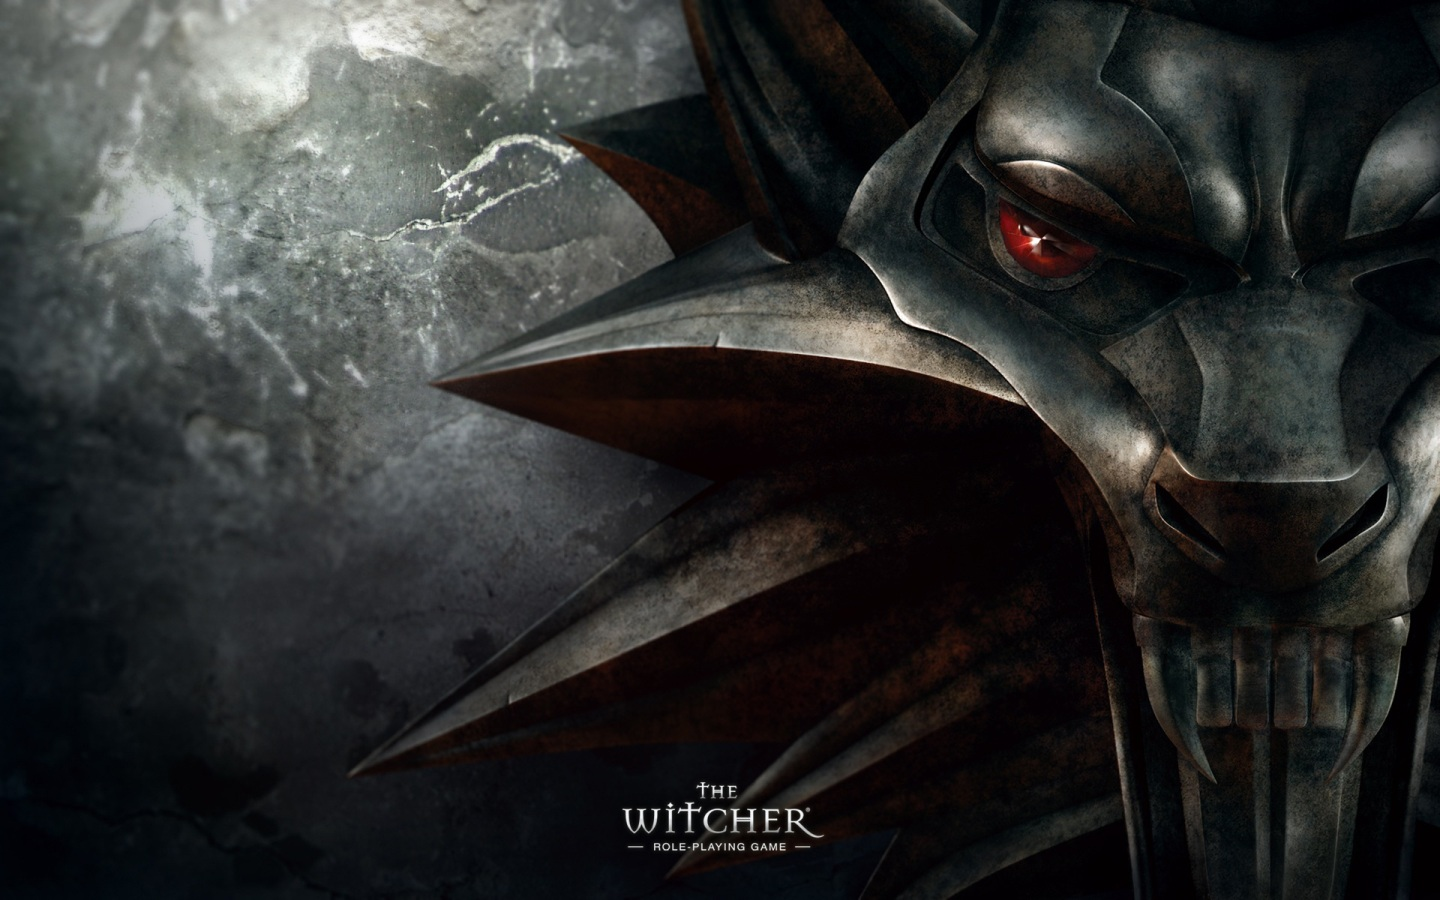 Killzone Shadow Fall Wallpaper 1920x1080 Wallpapers Hd 60 Wallpapers De The Witcher 2 Y Algunos